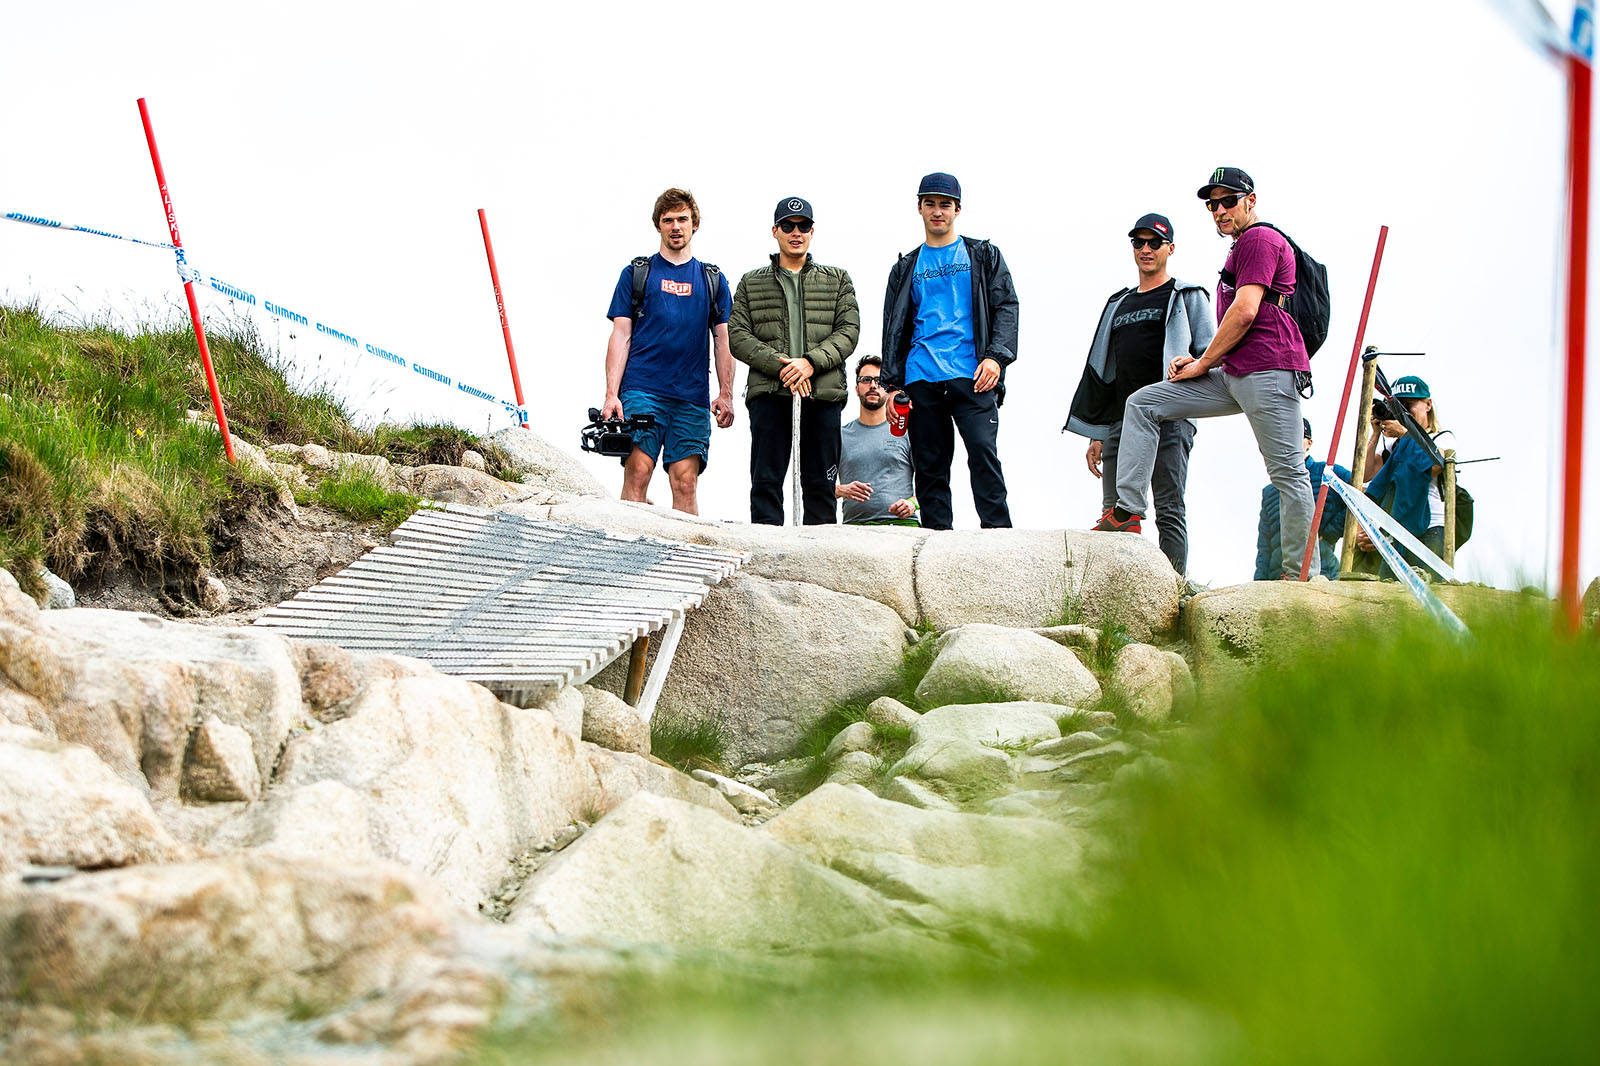 Santa Cruz Bicycles - The Track Walk Is a Family Affair for the Syndicate